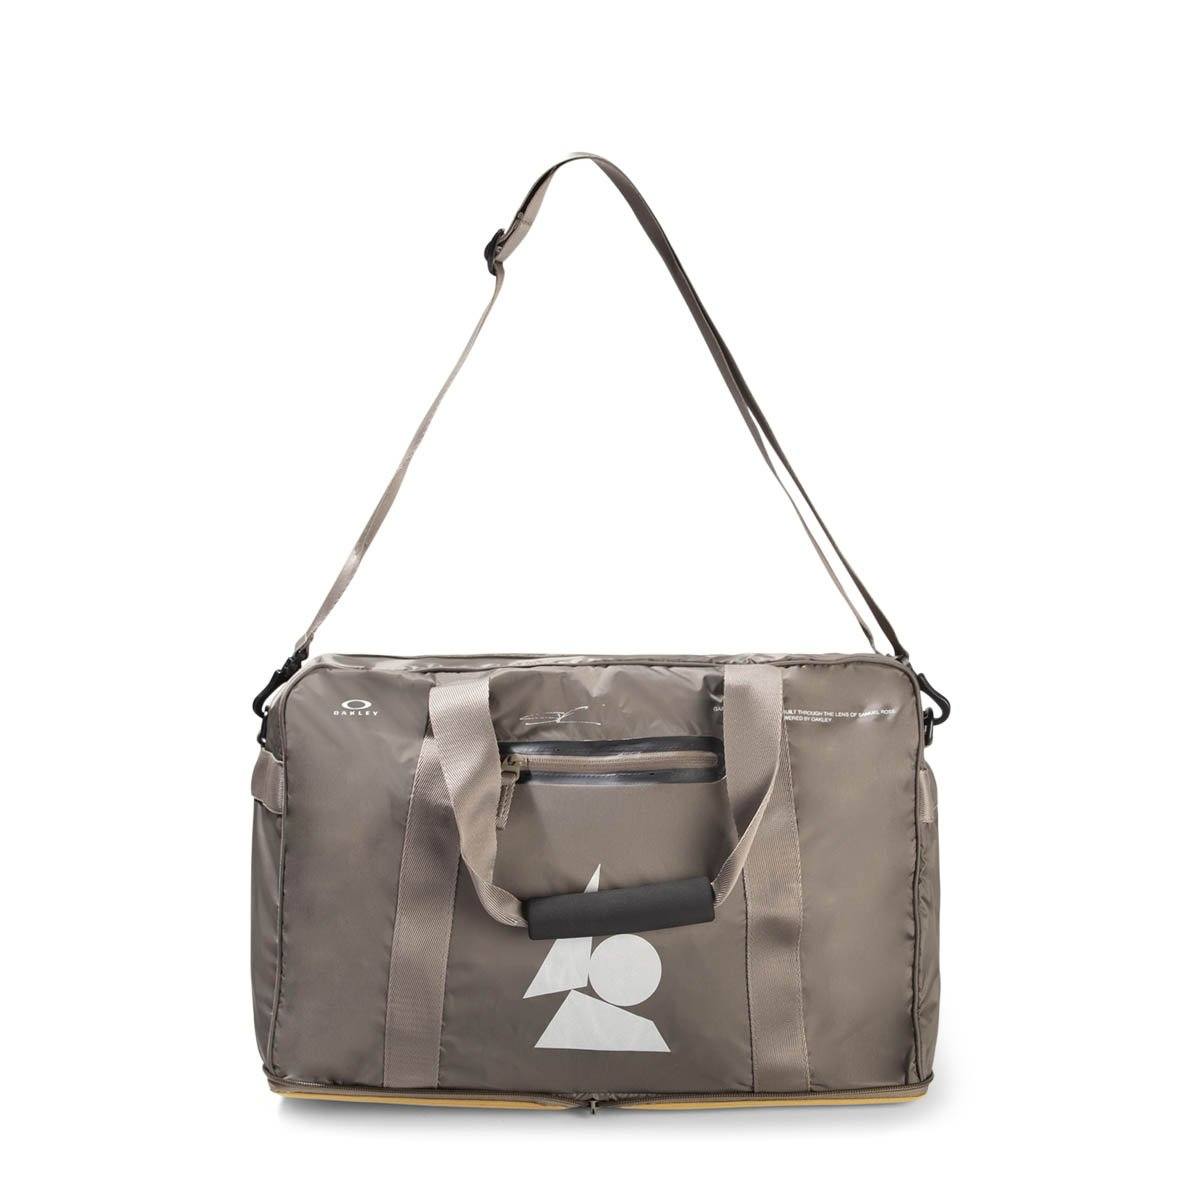 Oakley Bags & Accessories TAUPE GREY / O/S BAG